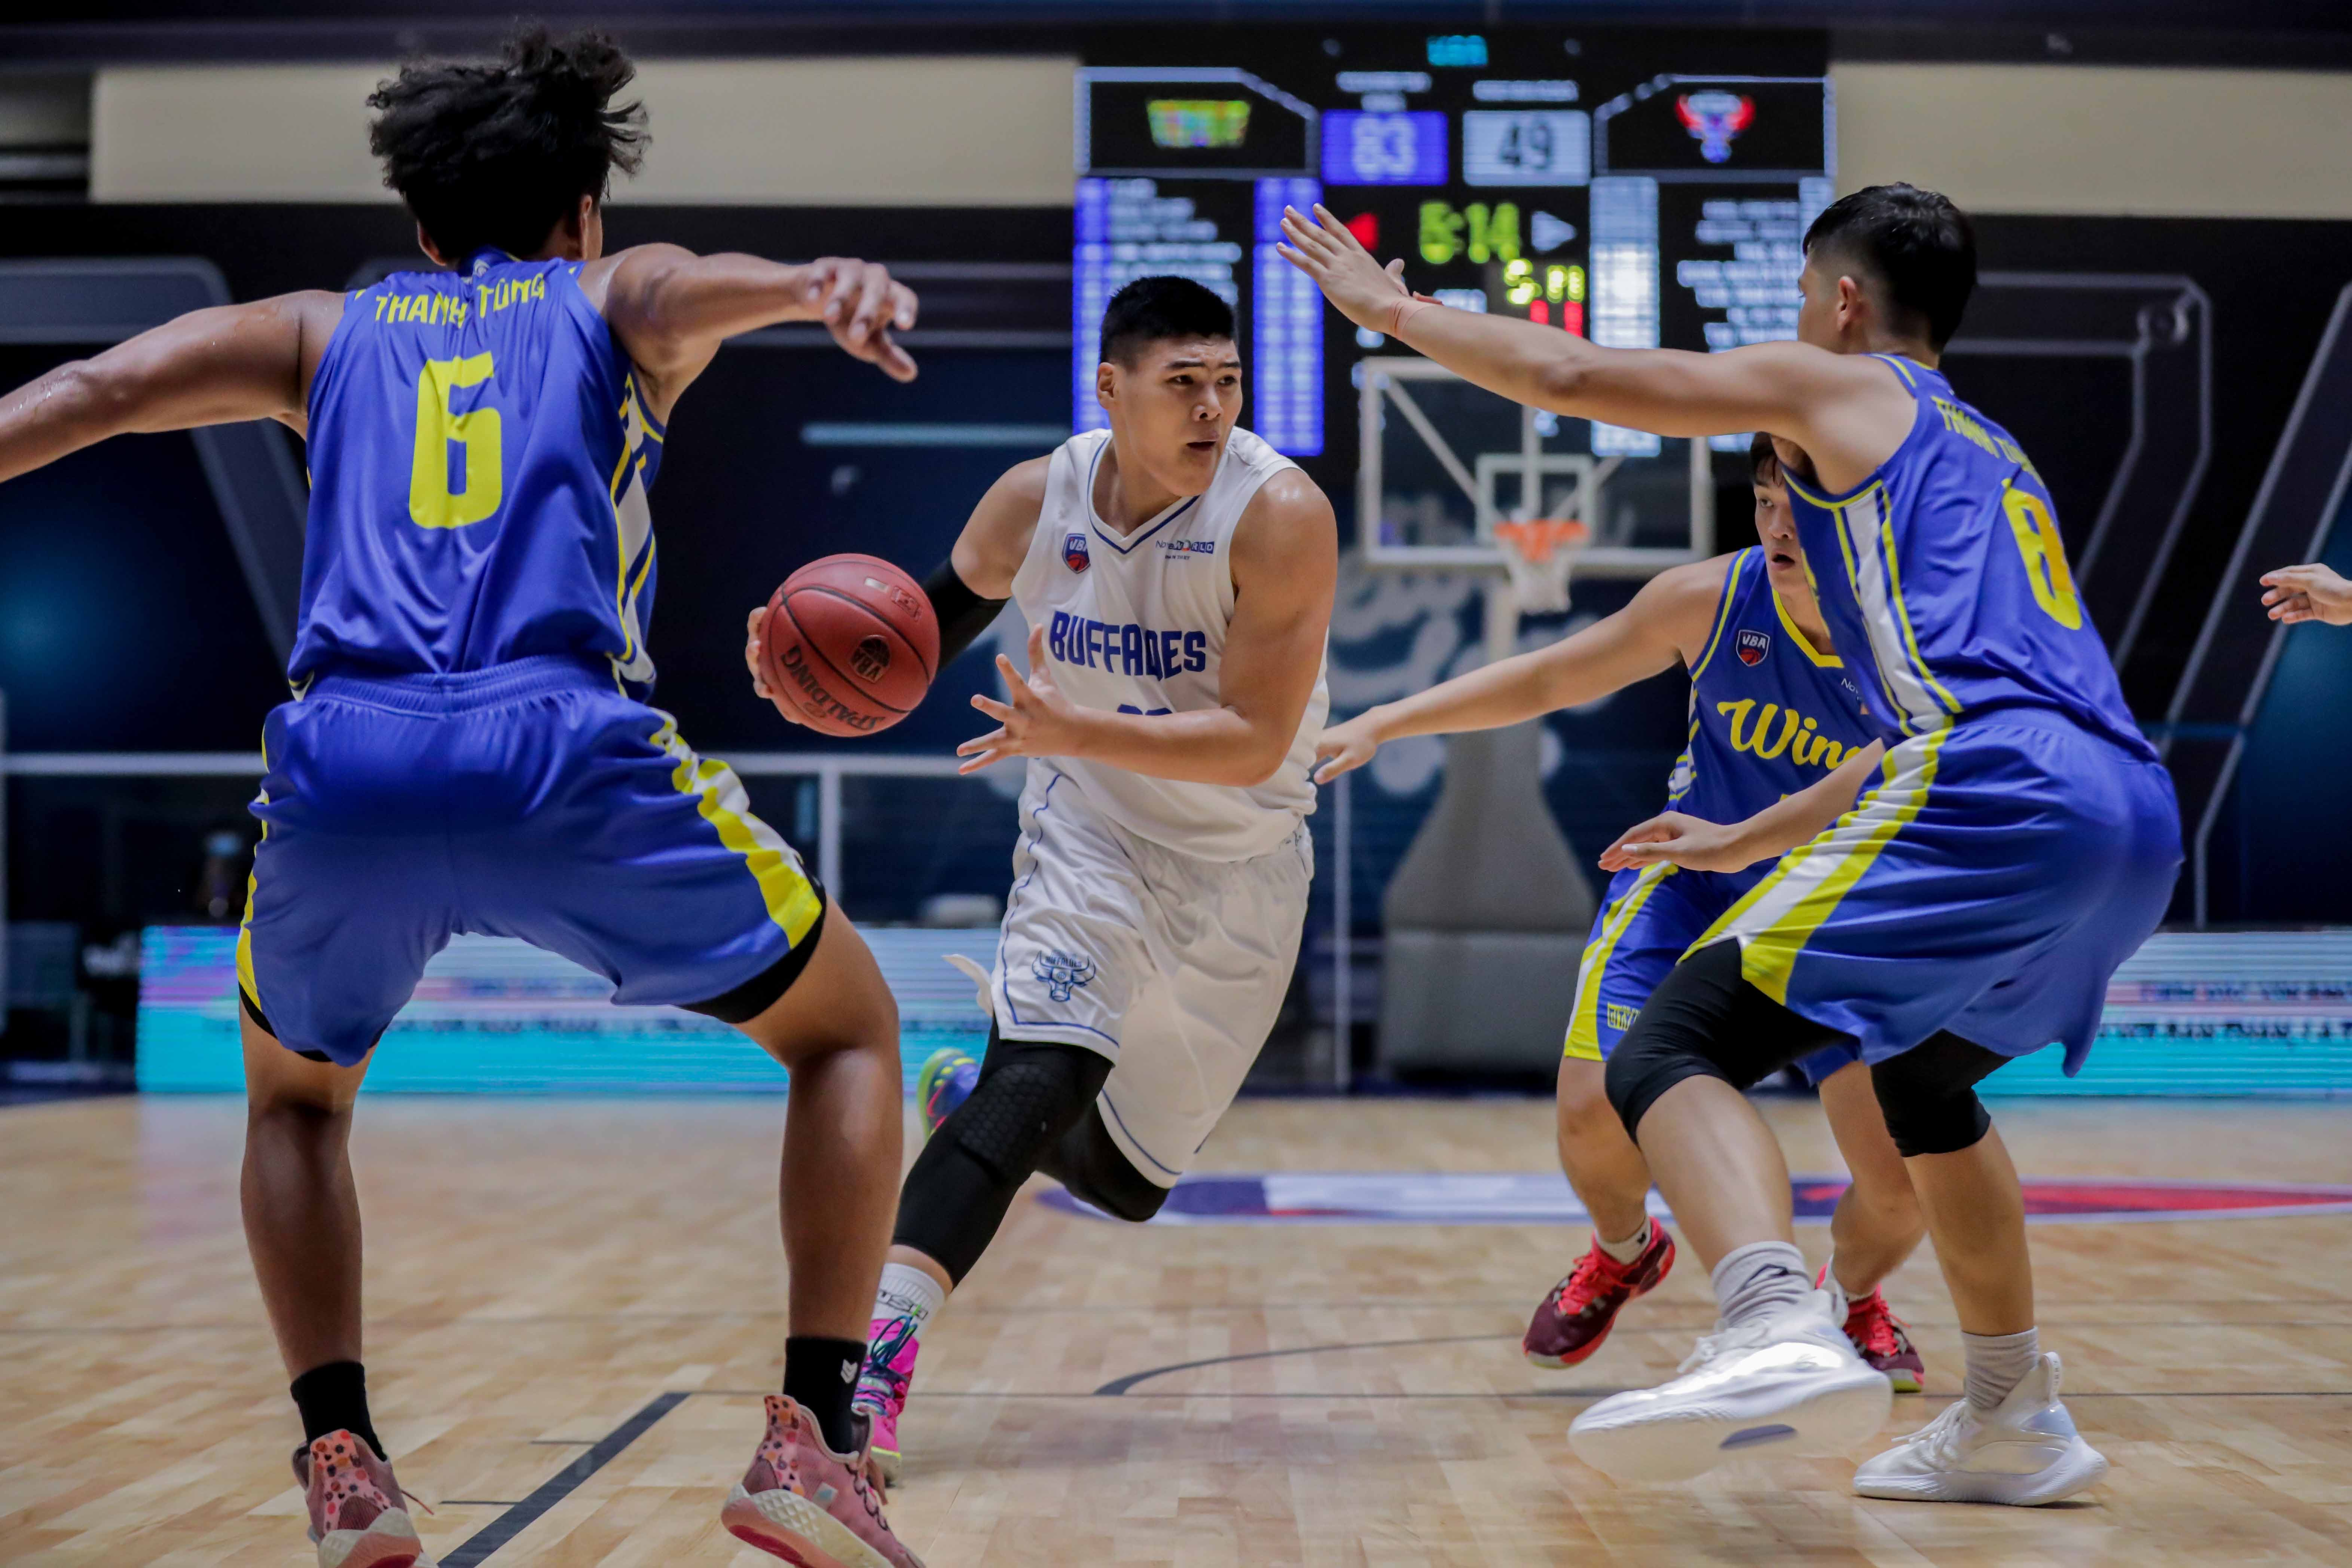 Minh Hieu of the Hanoi Buffaloes is surrounded by players from the Ho Chi Minh City Wings. Photo: VBA